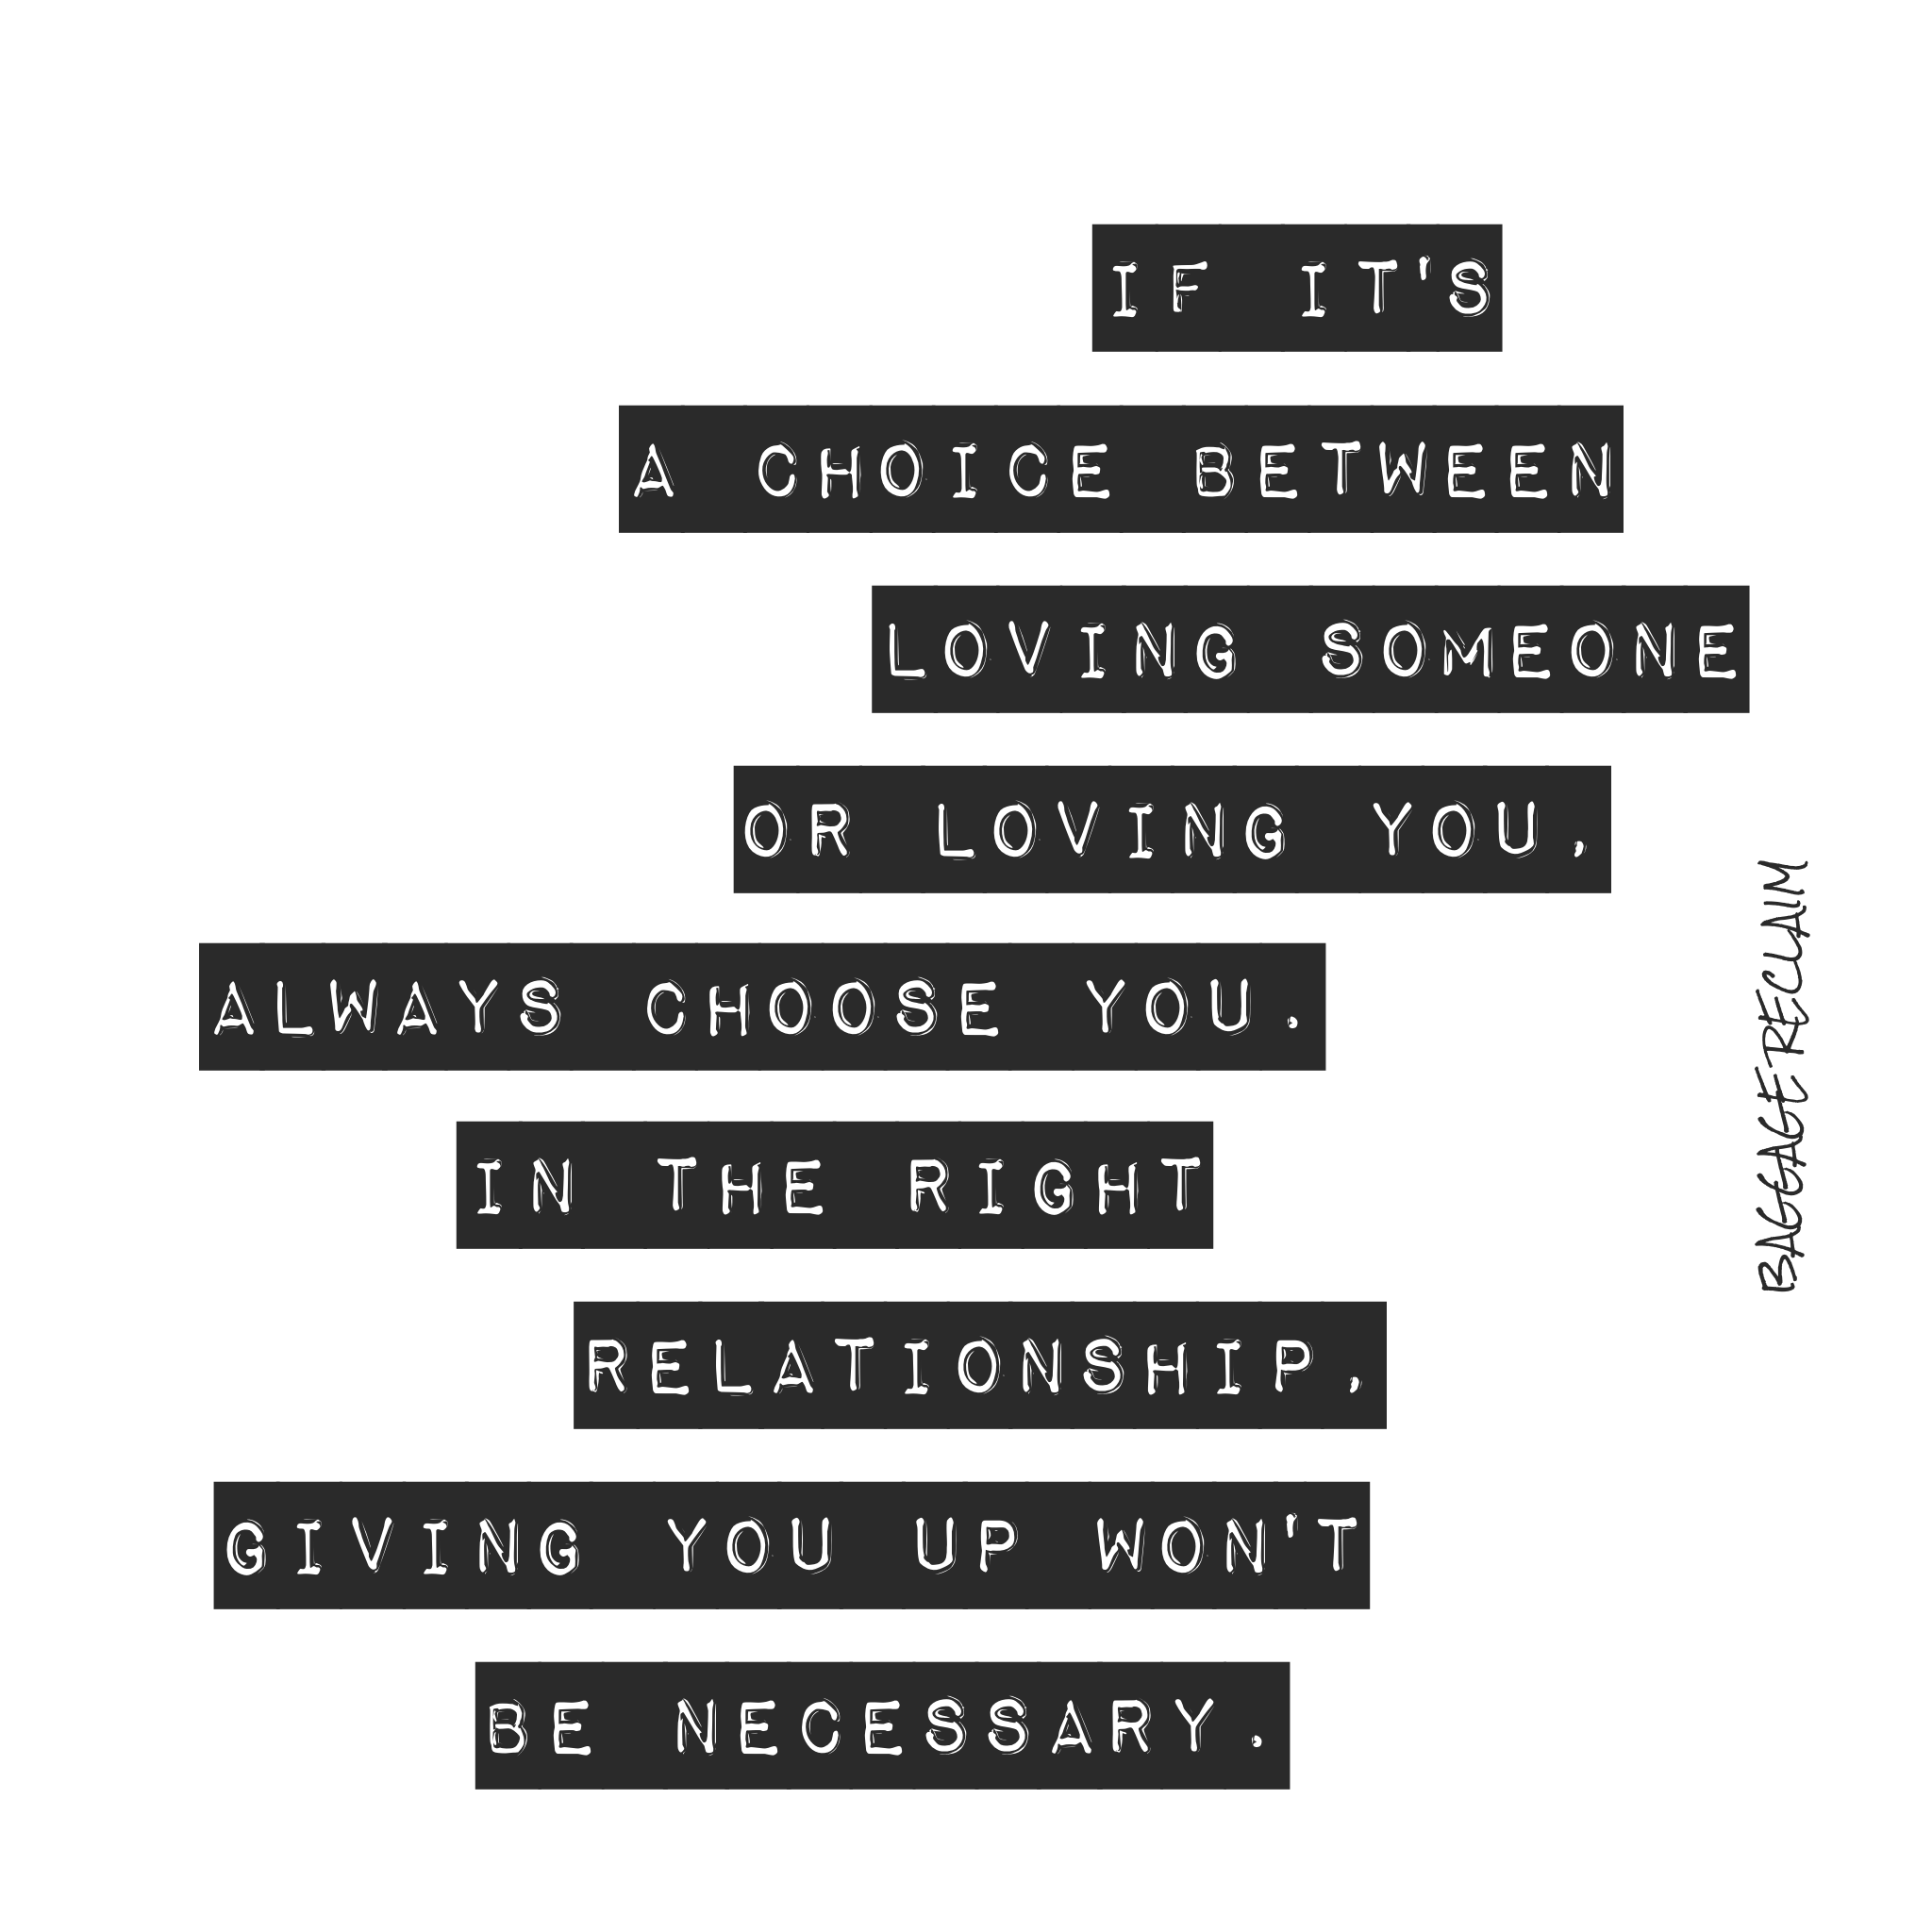 If it's a choice between loving someone or loving you, always choose you. In the right relationship, giving you up won't be necessary.